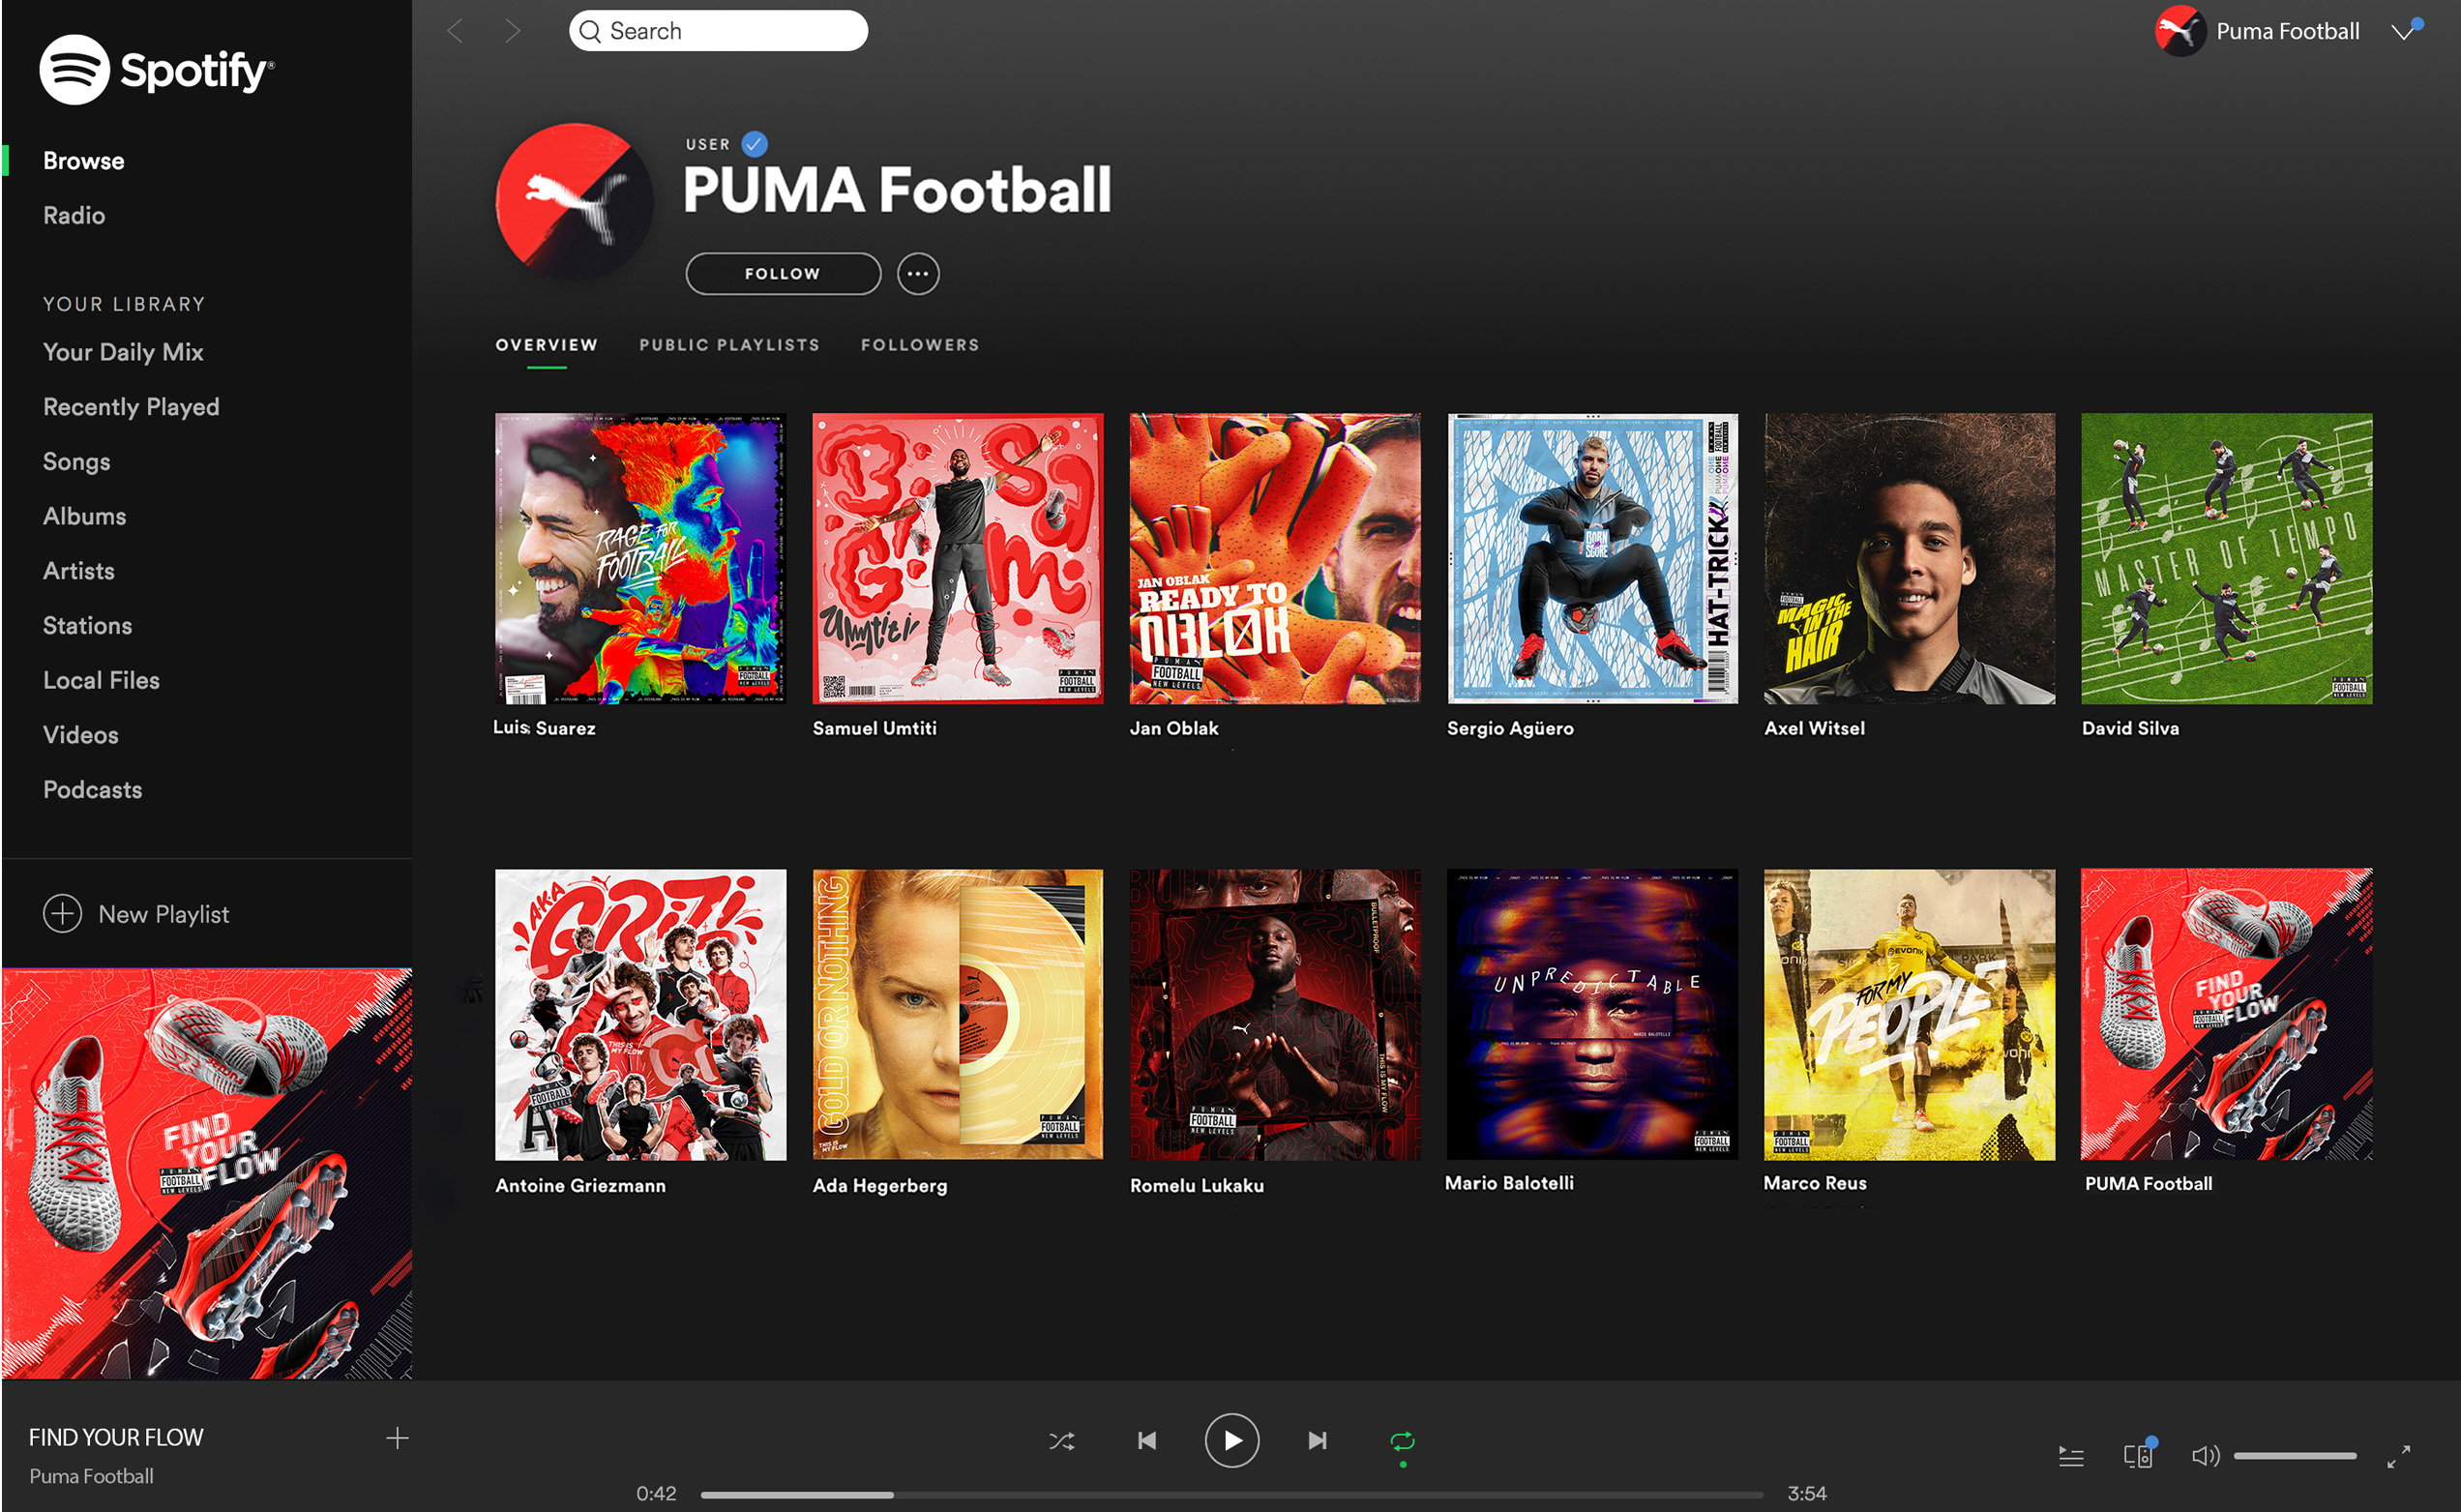 spotify_puma_campagne_flow_Presse_press_vignette_PUMA_FOOTBALL_lache_le_flow_ete_SOCIAL_ANTHEM_2